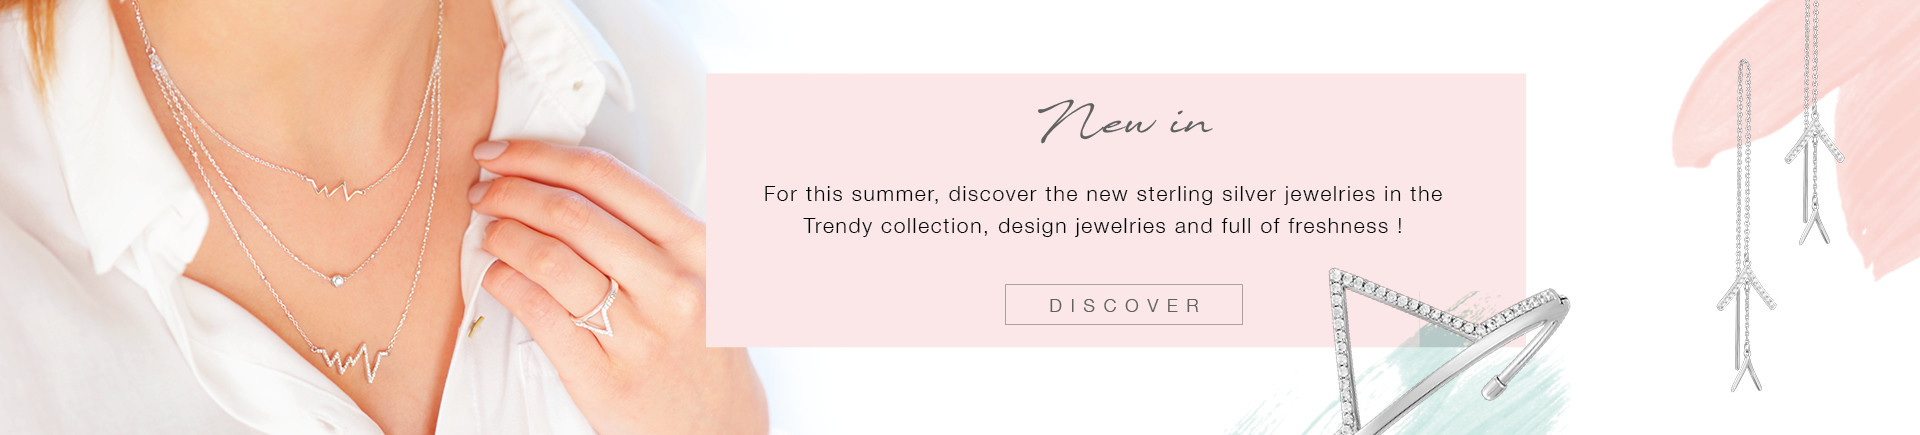 Original and fresh jewelry for your summer looks!